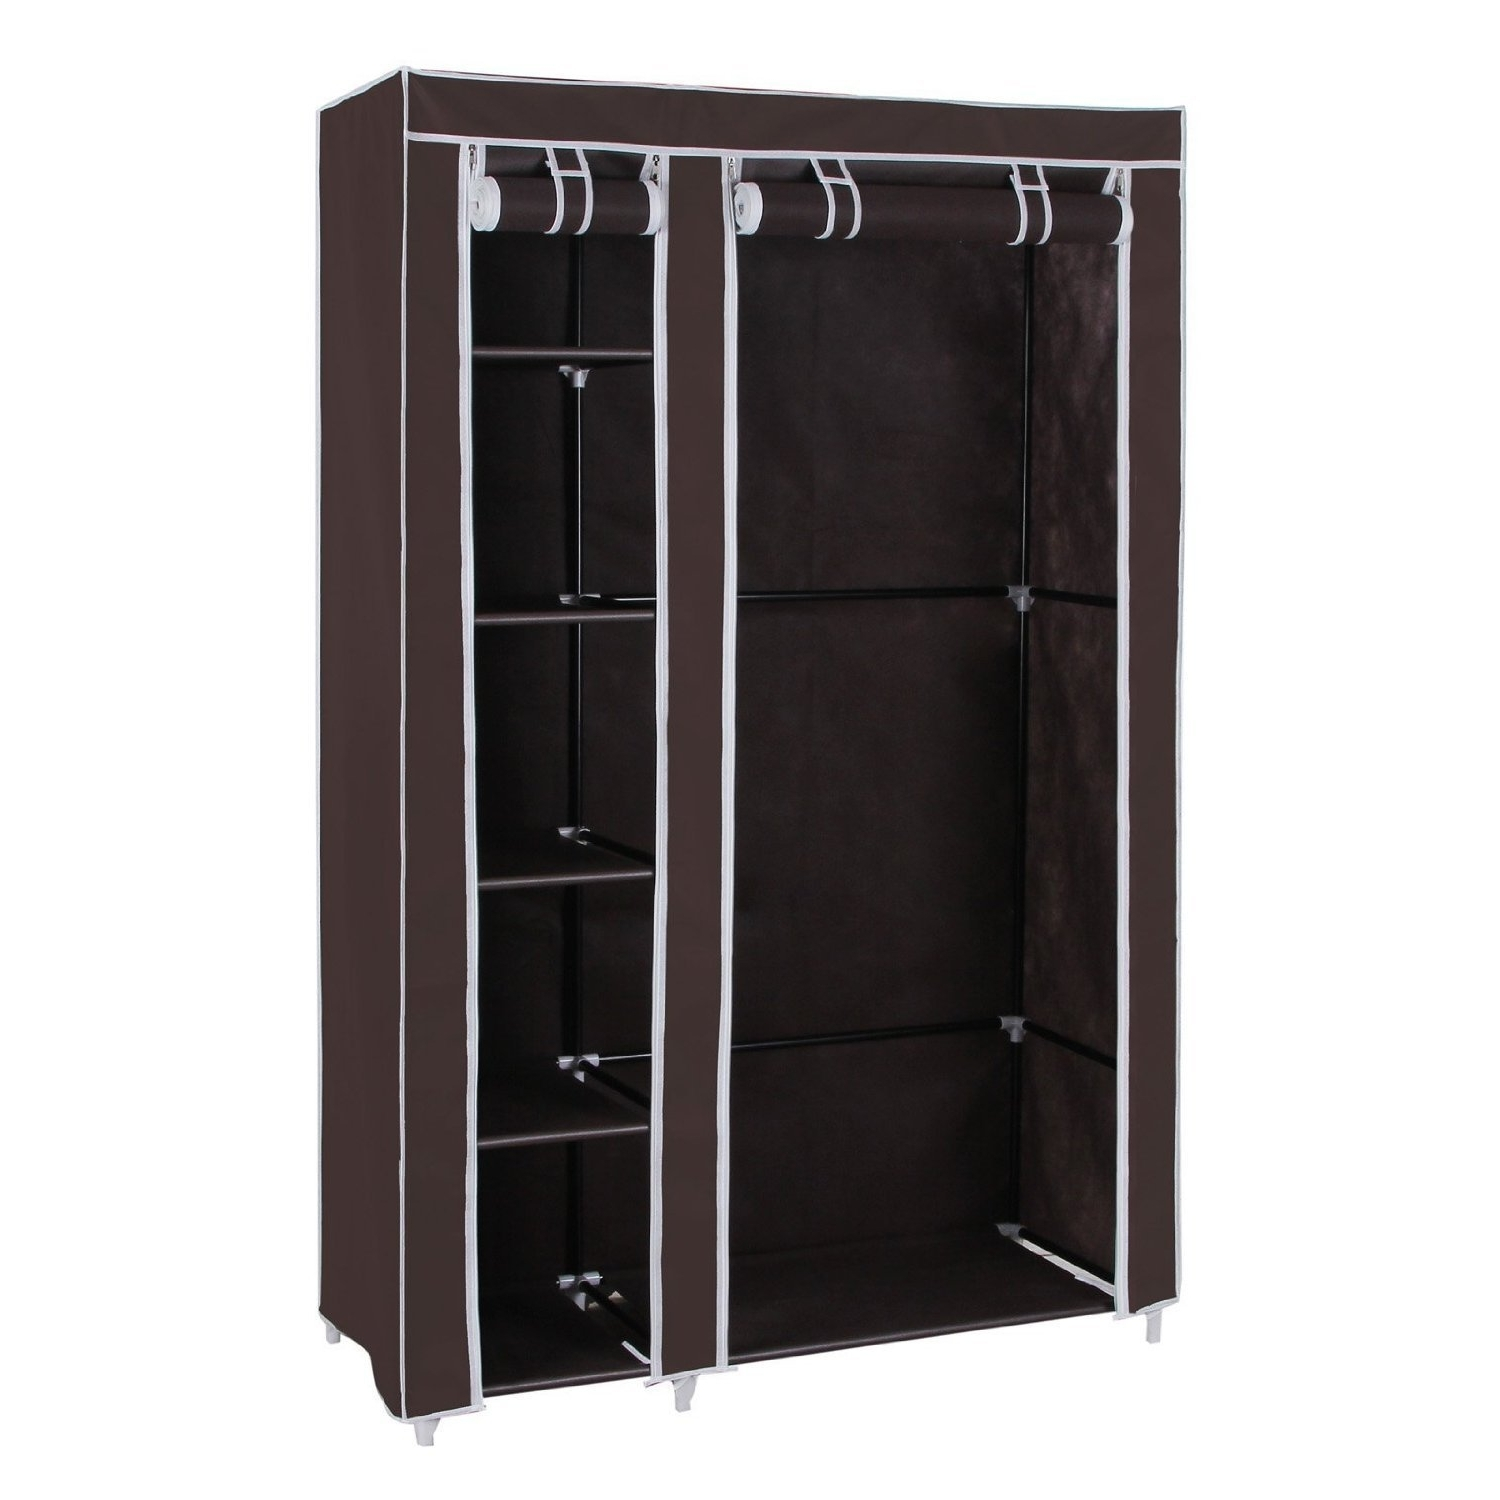 Trendy Mobile Wardrobes Cabinets In Closet Storage : Portable Clothing Racks Storage Clothing Custom (View 13 of 15)